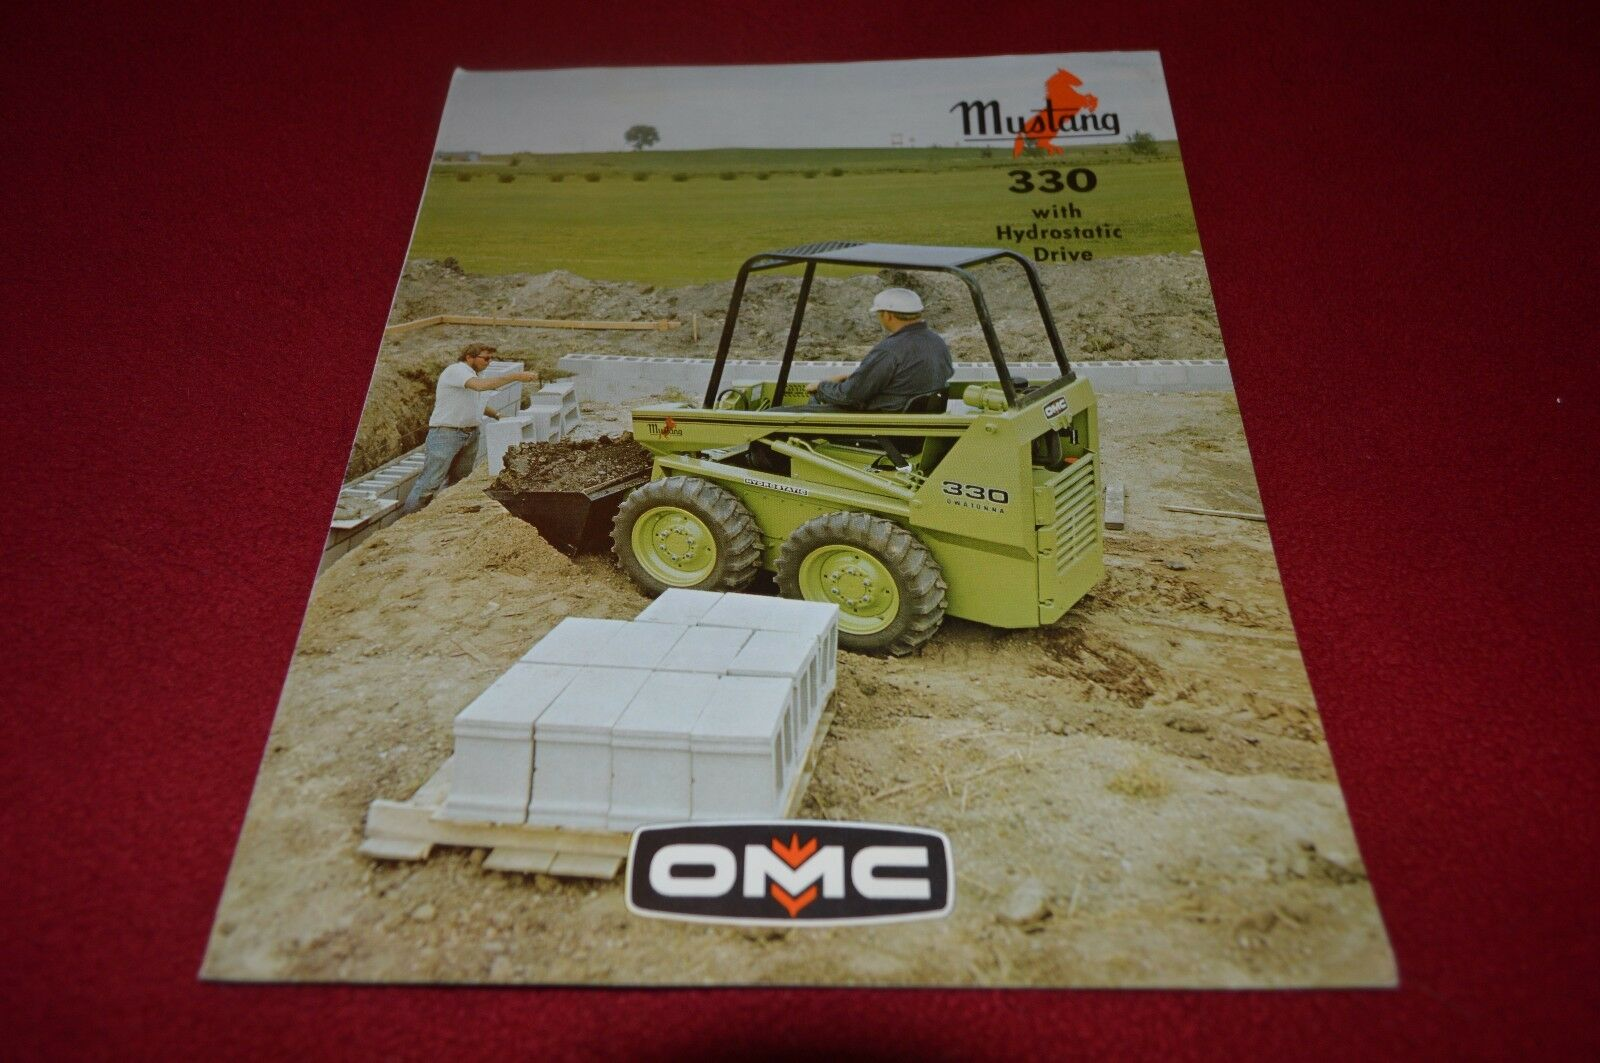 Owatonna Mustang 330 Skid Steer Loader Dealer's Brochure YABE11 ver2 1 of  1Only 1 available ...